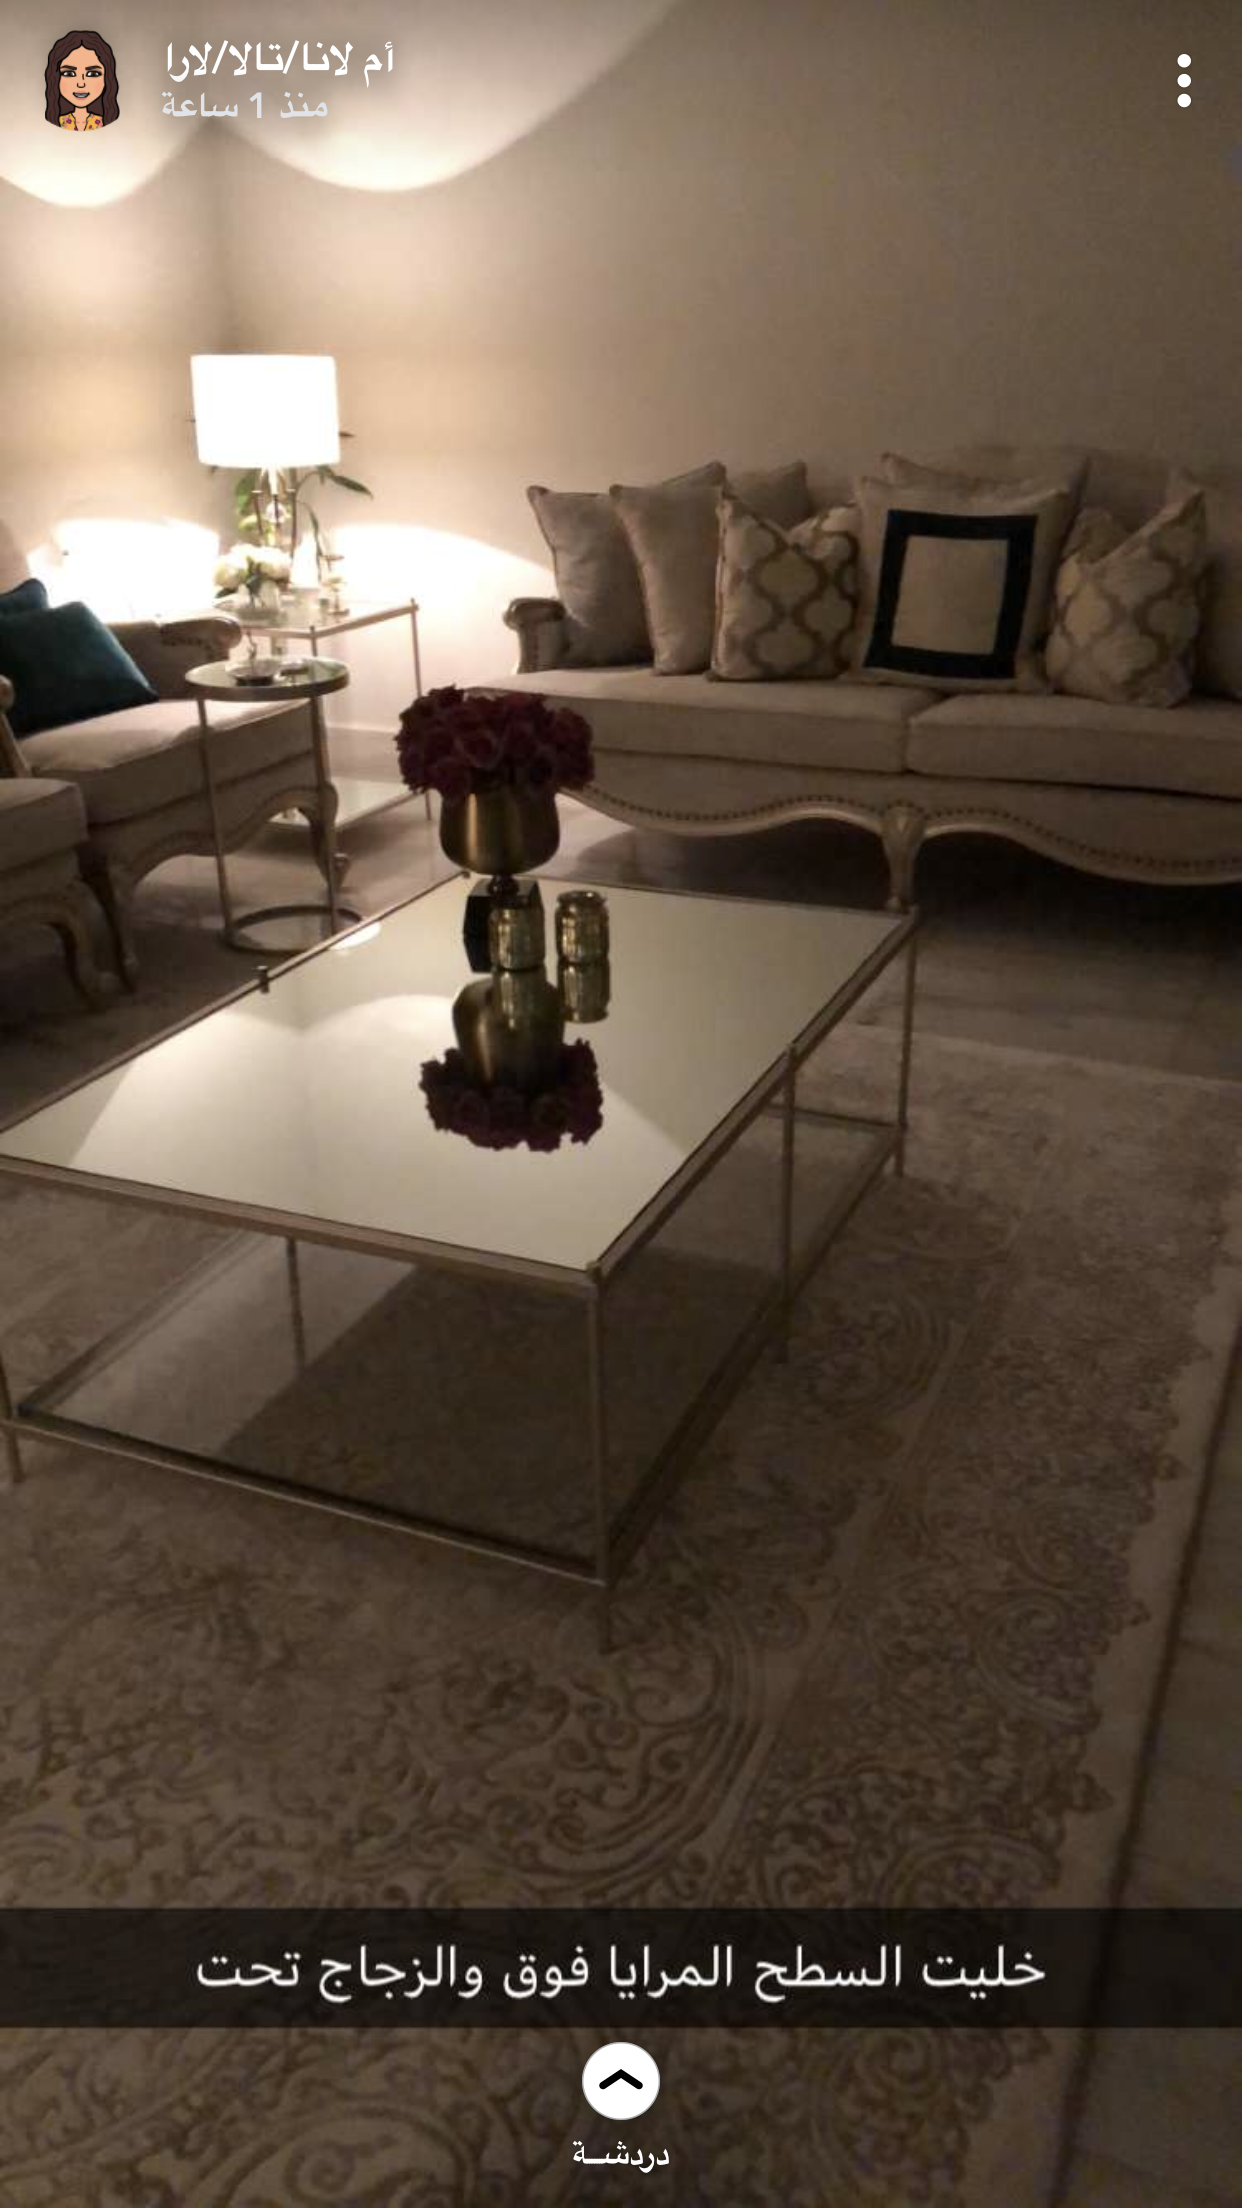 Pin By Ftoo On بيت اهلي Coffee Table Home Decor Decor